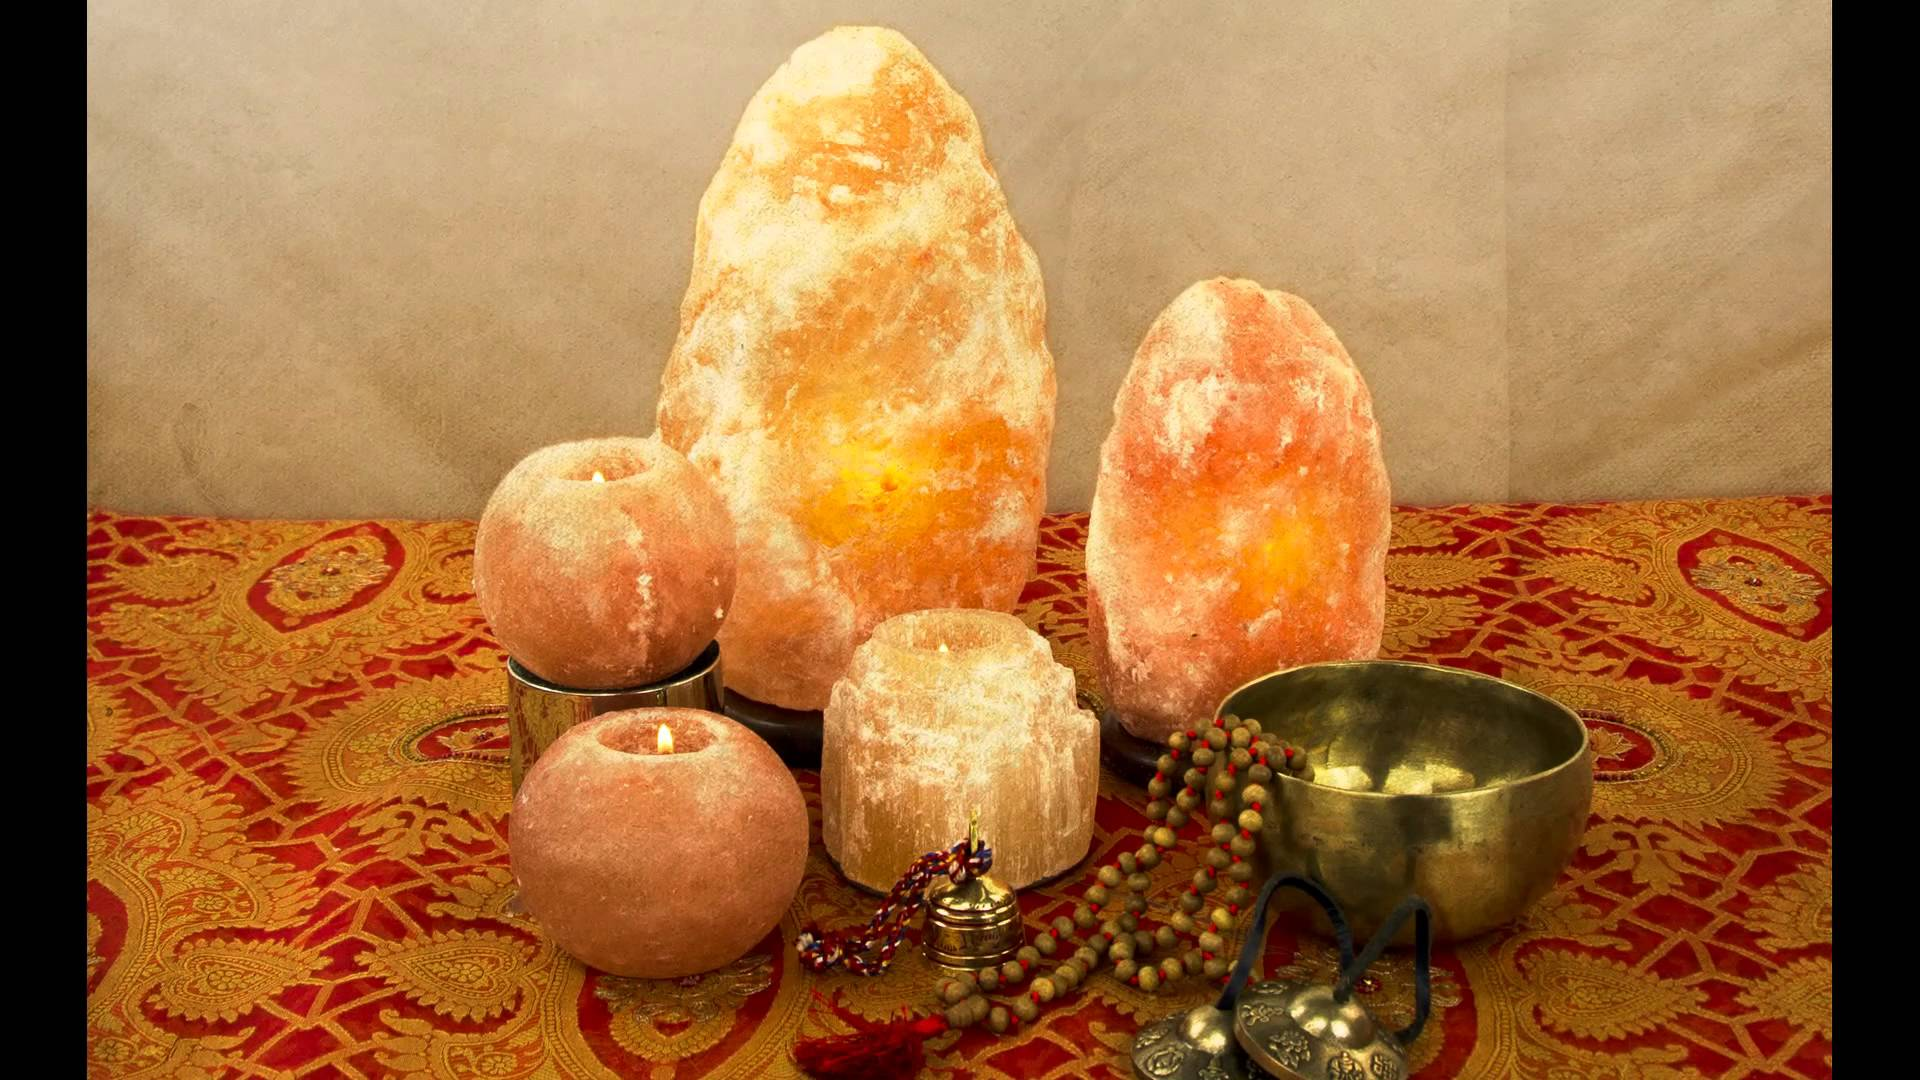 Images Of Salt Lamps : The Amazing Health Benefits OF Himalayan Salt Lamps!